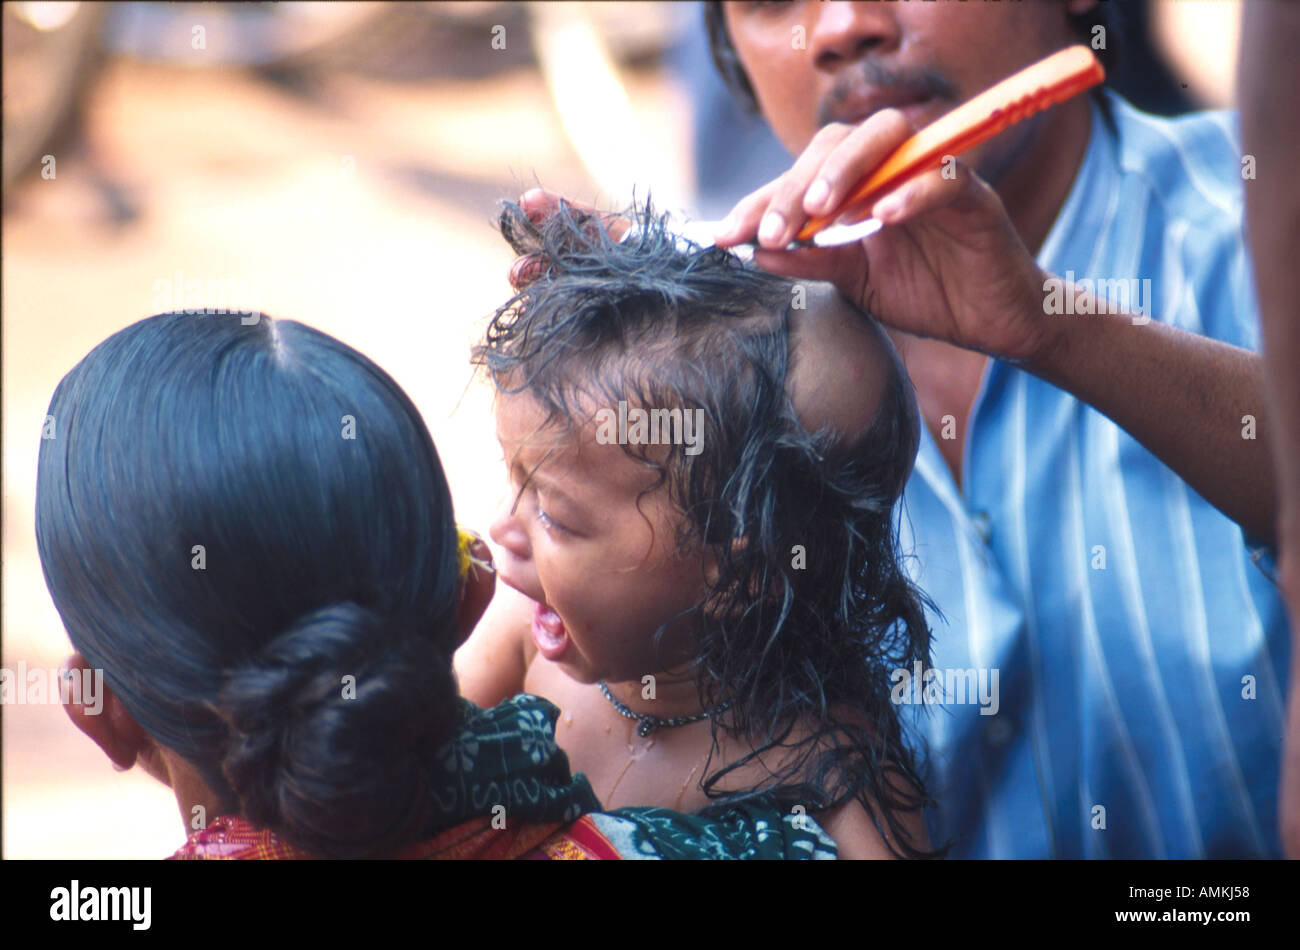 A child cries during Mundan or head shave ceremony by a braber Stock